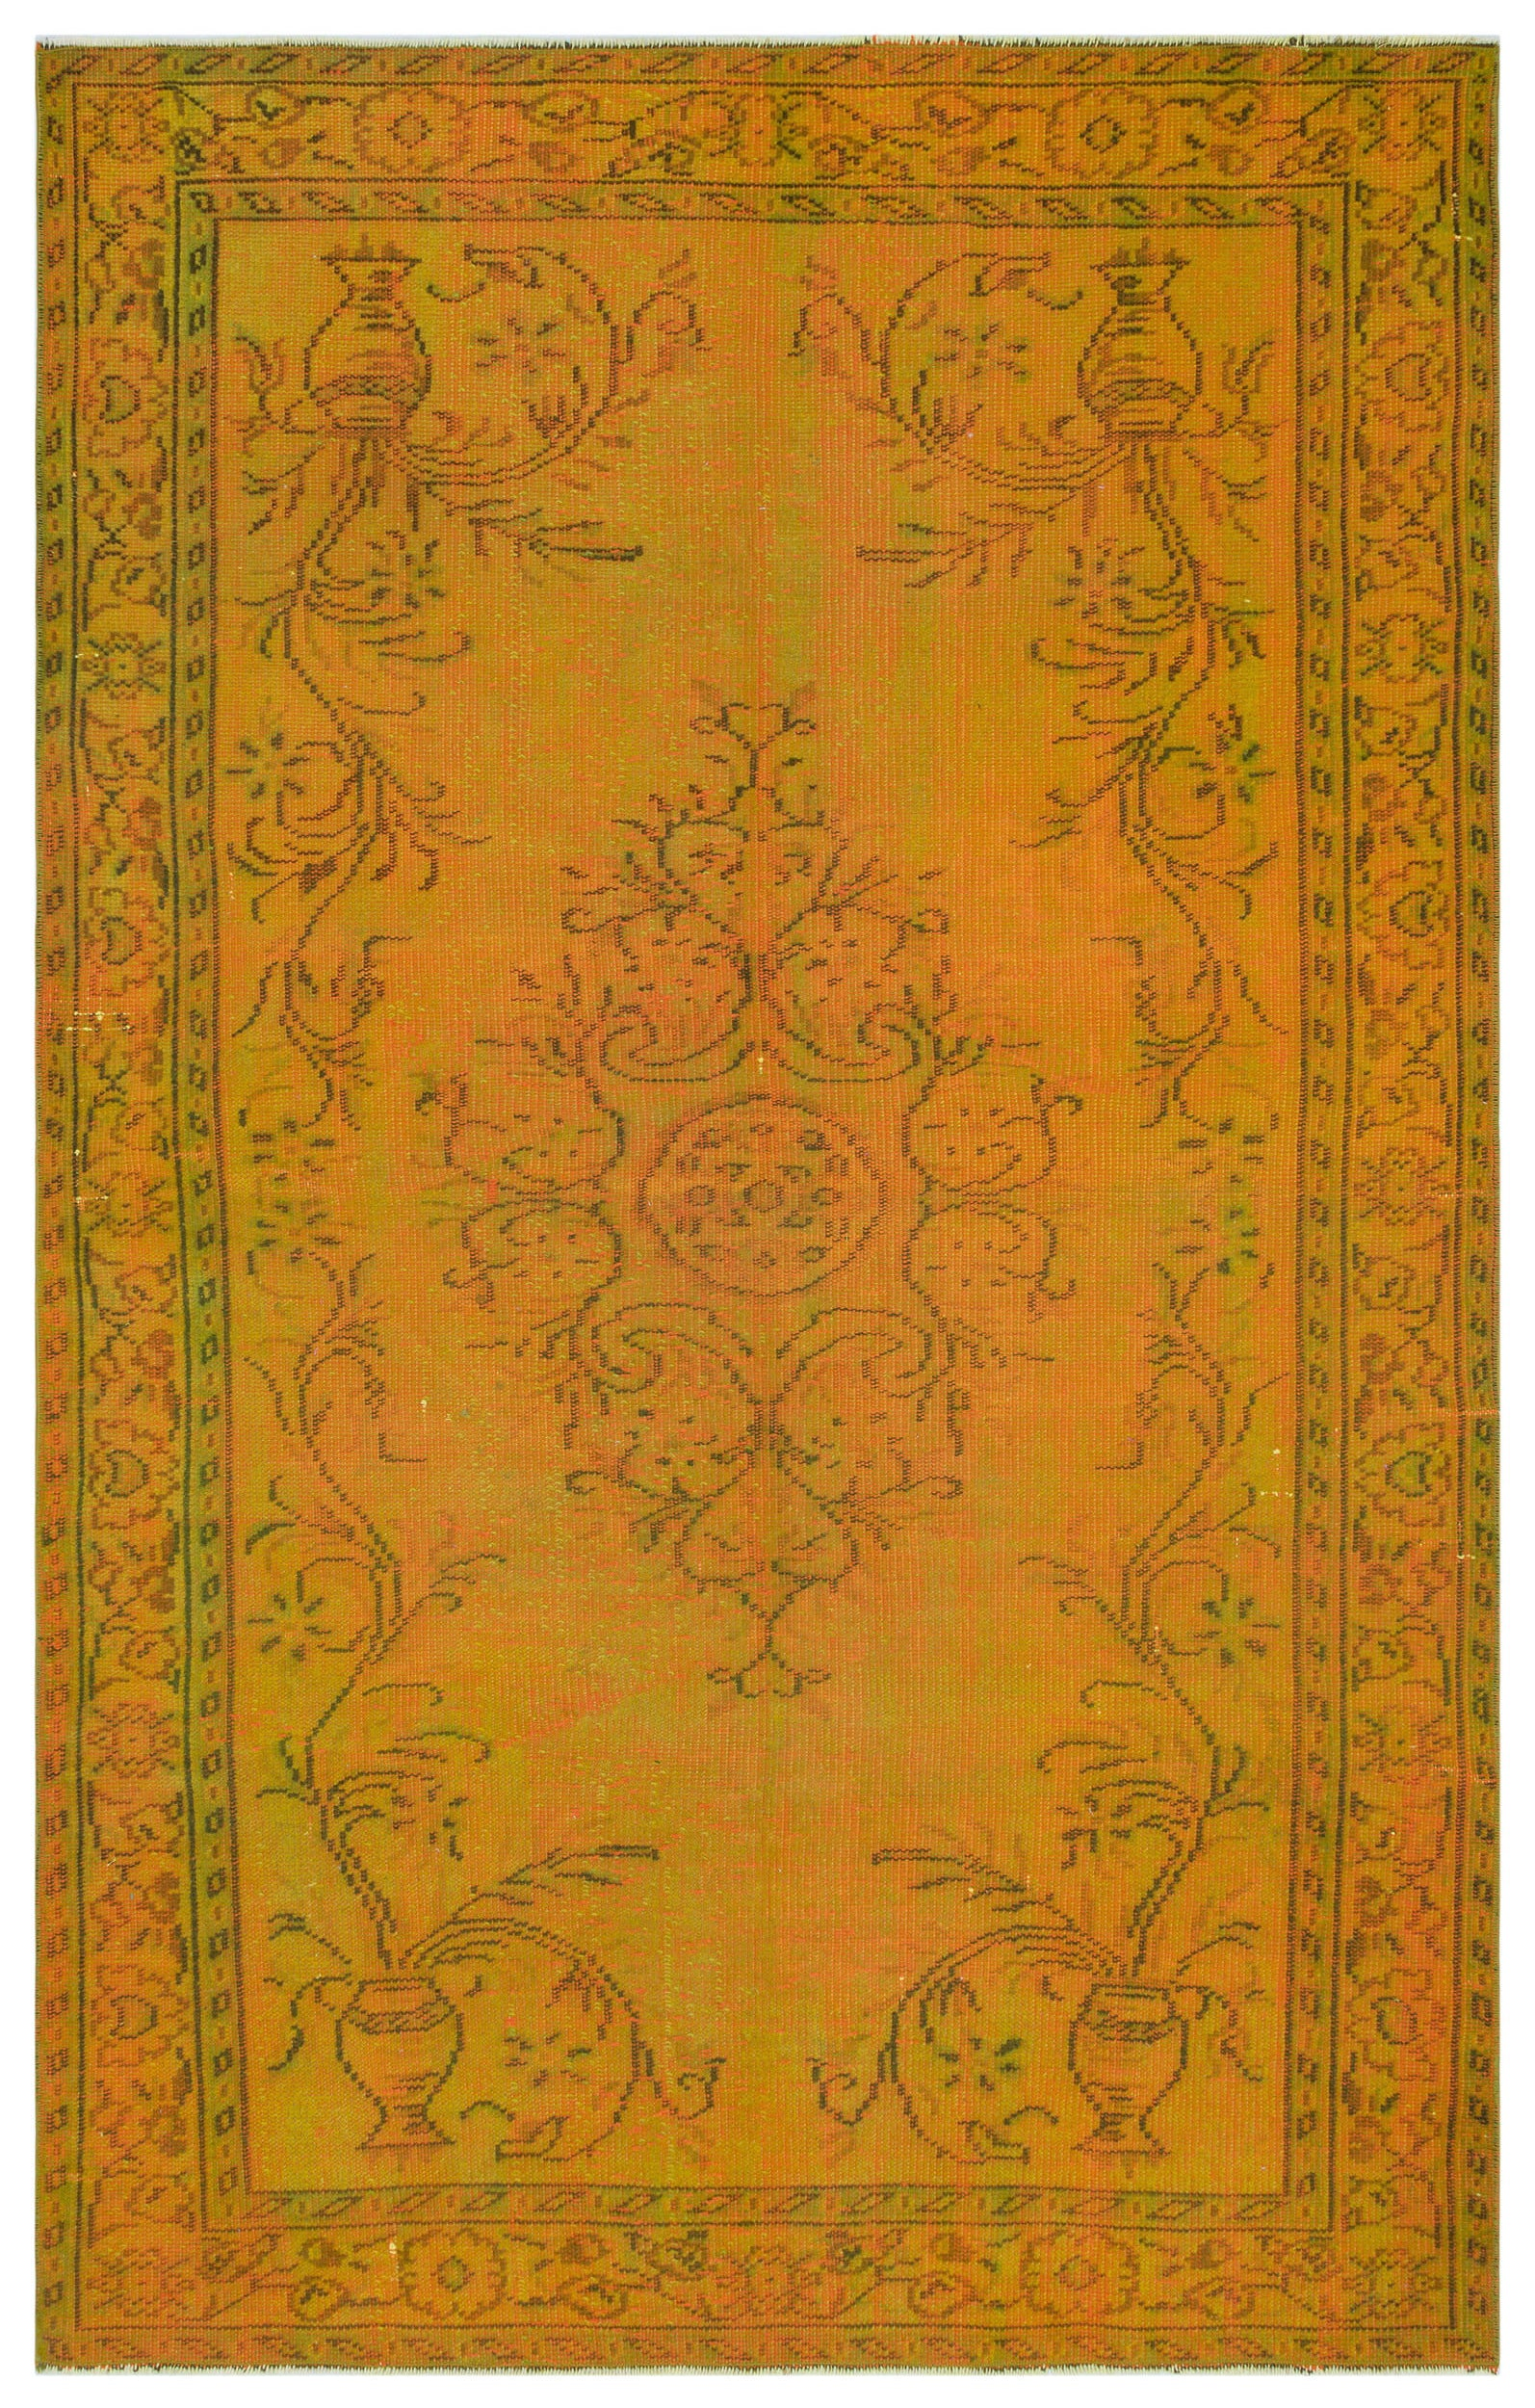 Yellow Over Dyed Vintage Rug 5'6'' x 8'8'' ft 168 x 265 cm